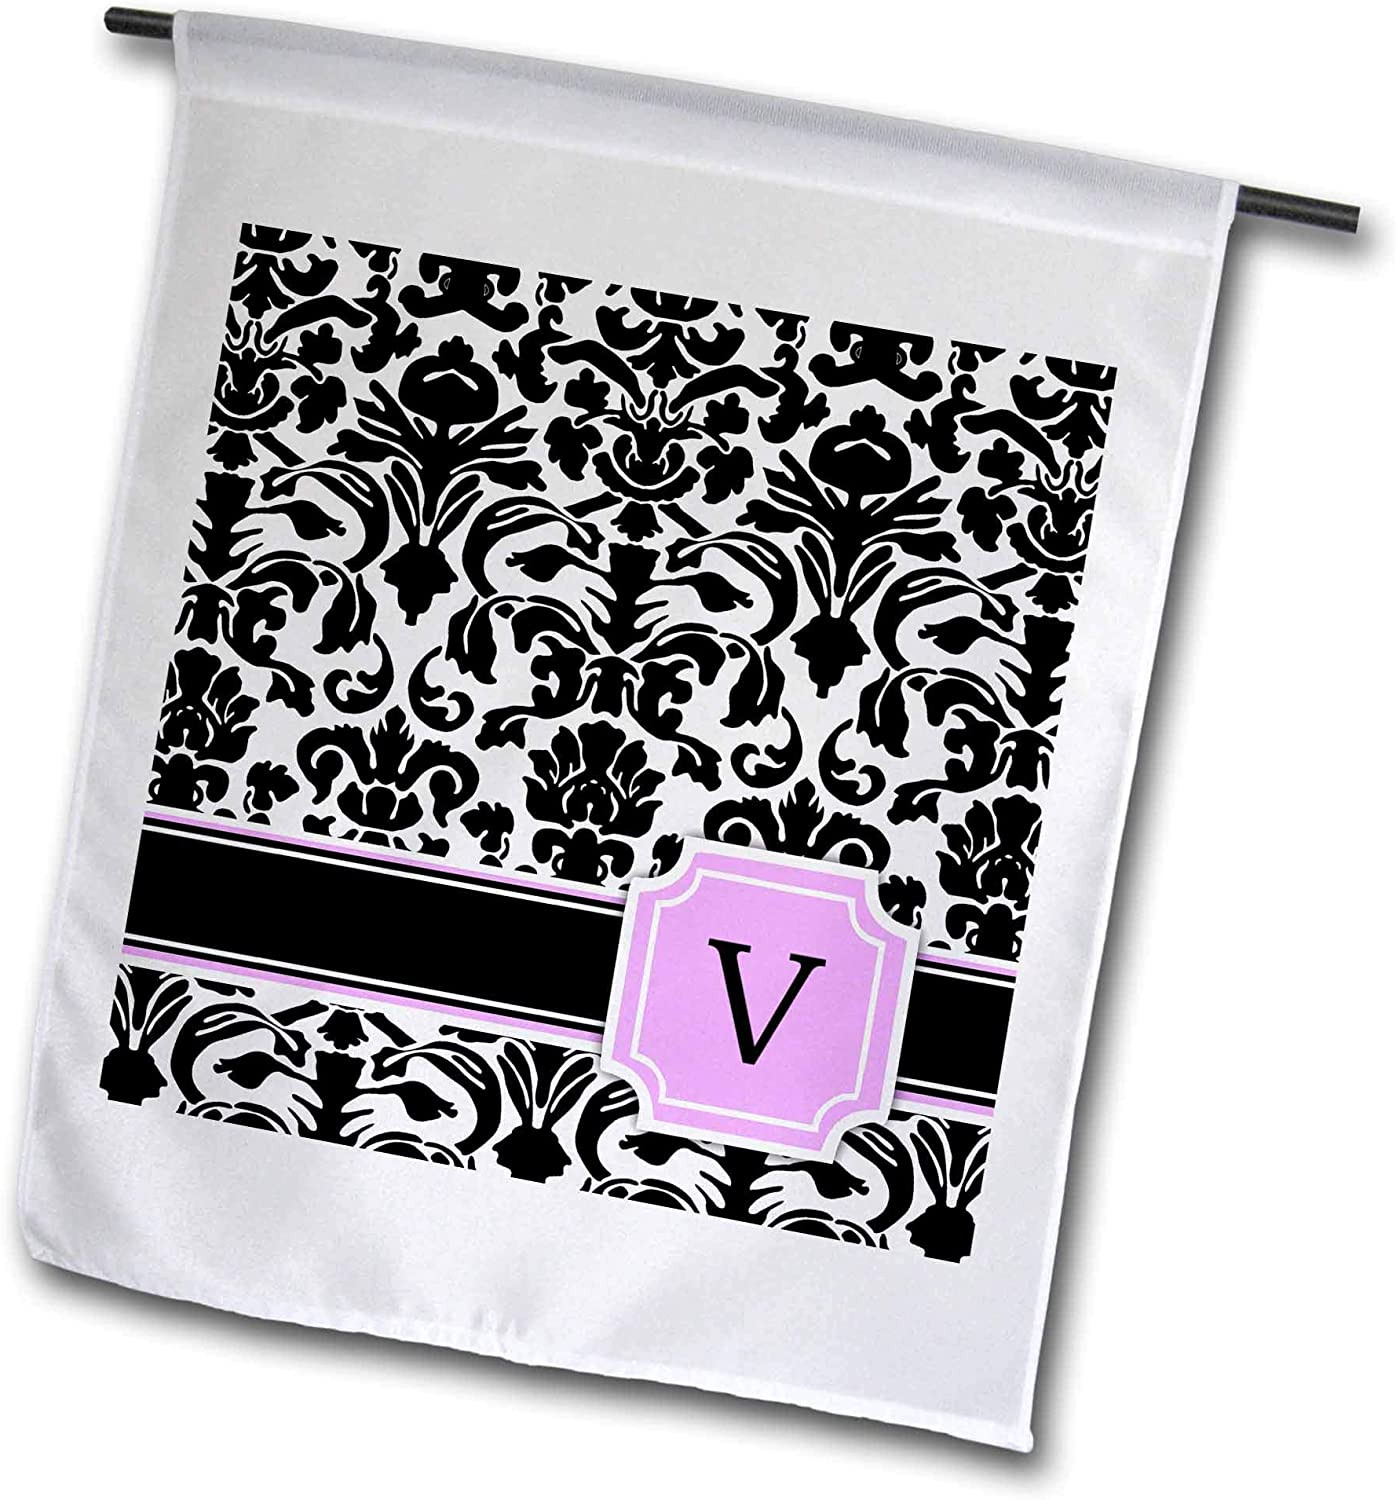 3dRose InspirationzStore Monograms - Personal Initial V Monogrammed Pink Black and White Damask Pattern Girly Stylish Personalized Letter - 12 x 18 inch Garden Flag (fl_154397_1)